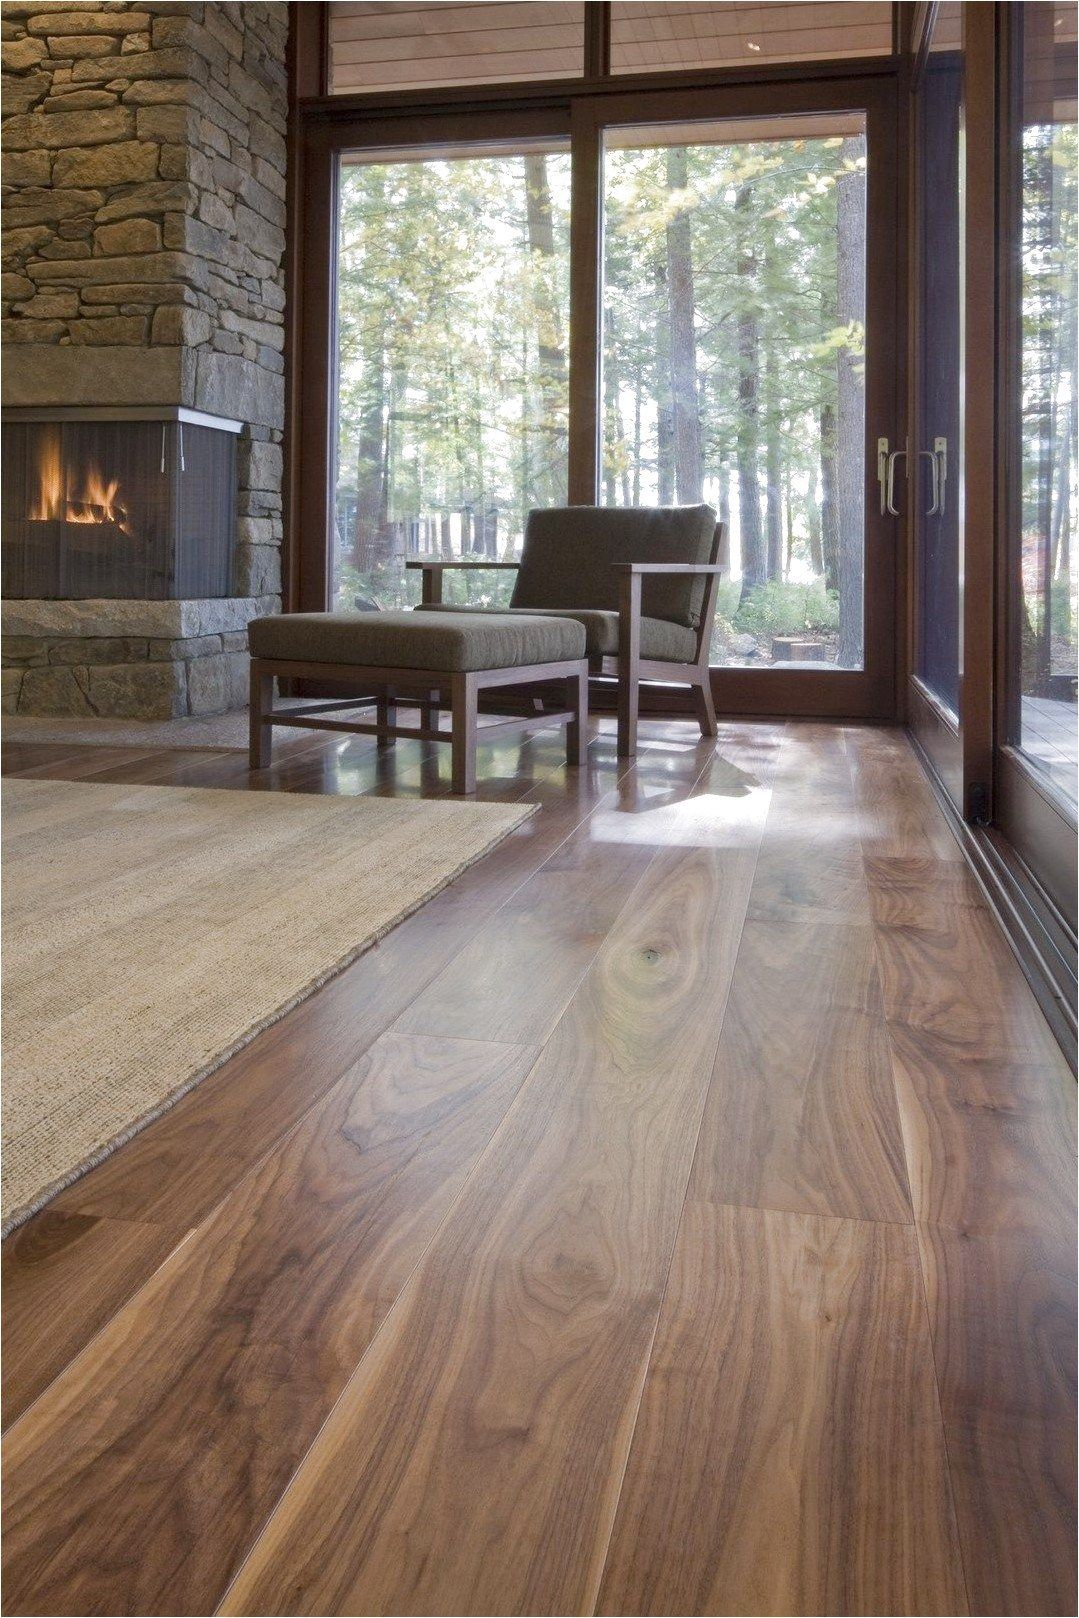 Perfect Color Wood Flooring Ideas 10 Ceramicfloordesigns Click The Image Or Link For More Info Wood Floors Wide Plank Flooring Living Room Wood Floor